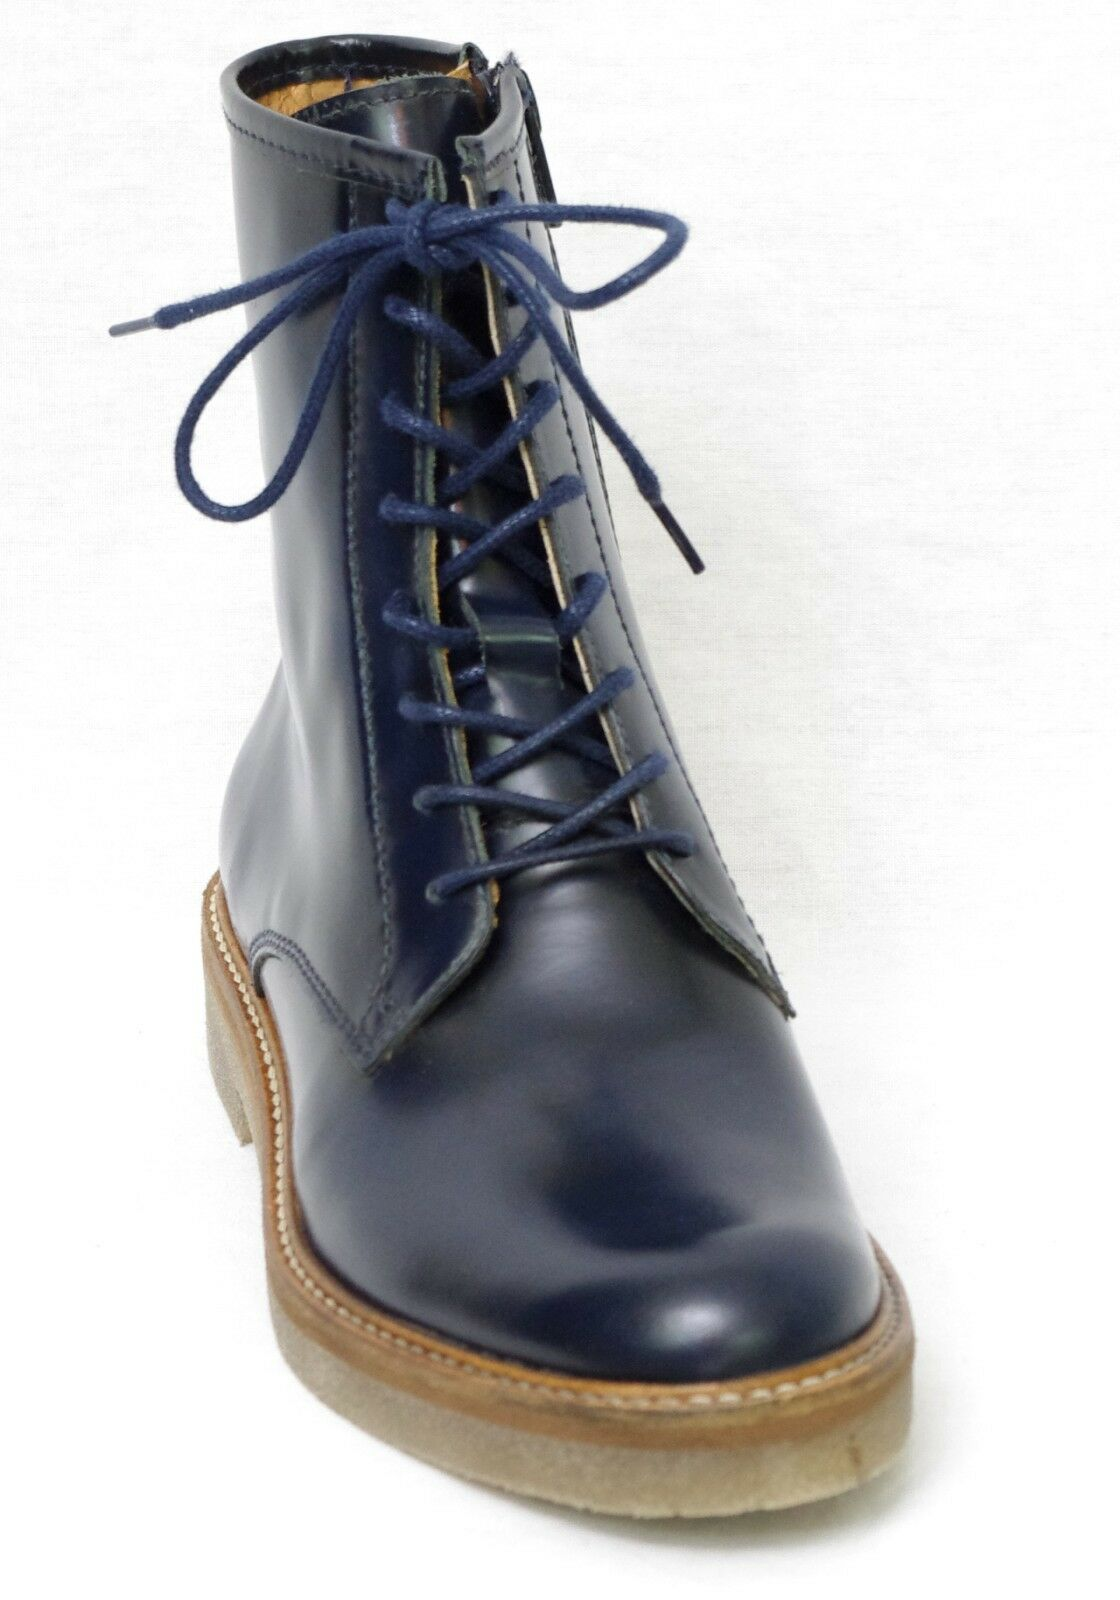 KICKERS OXFORDO Bottines Boots cuir bleu marine femme 512110 5 taille 37